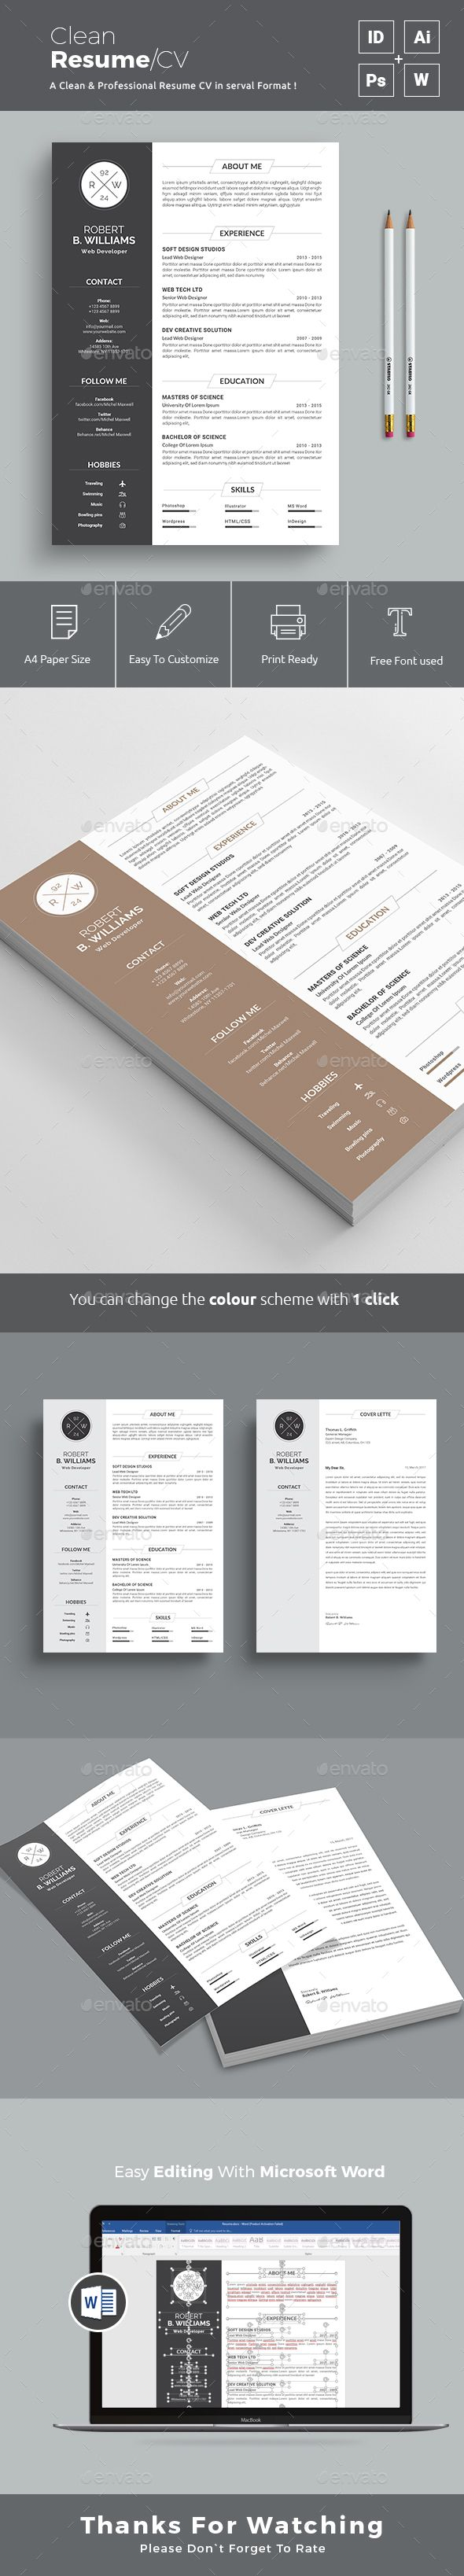 Resume Template Design https://graphicriver.net/item/resume/19377053?ref=themedevisers